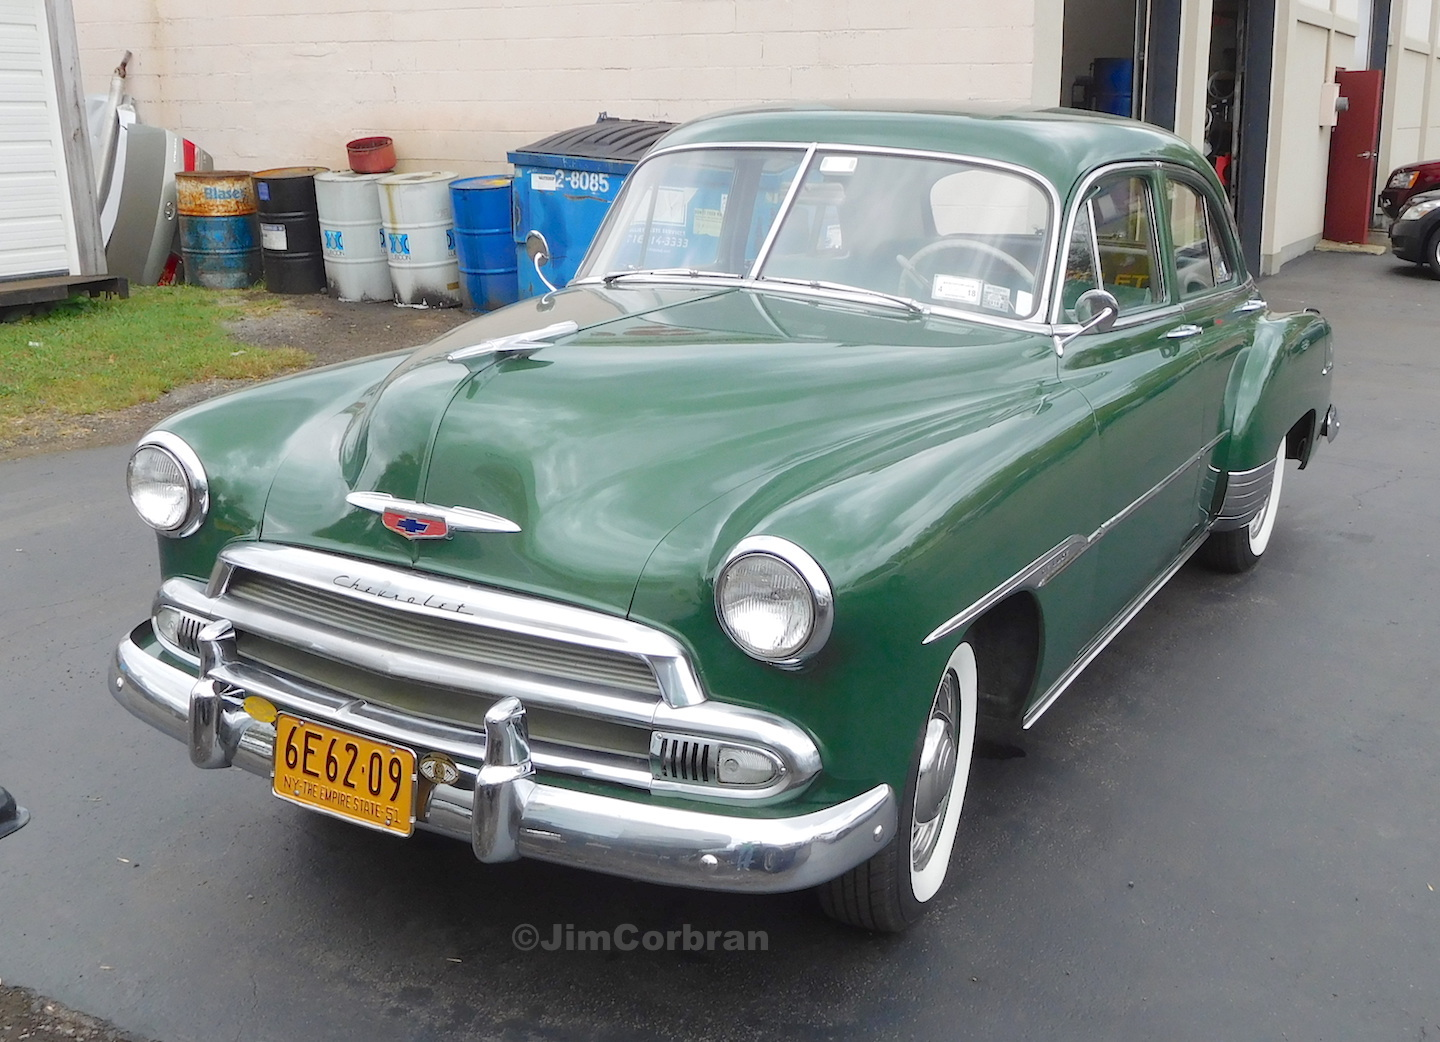 RealRides of WNY - 1951 Chevy Styleline Deluxe